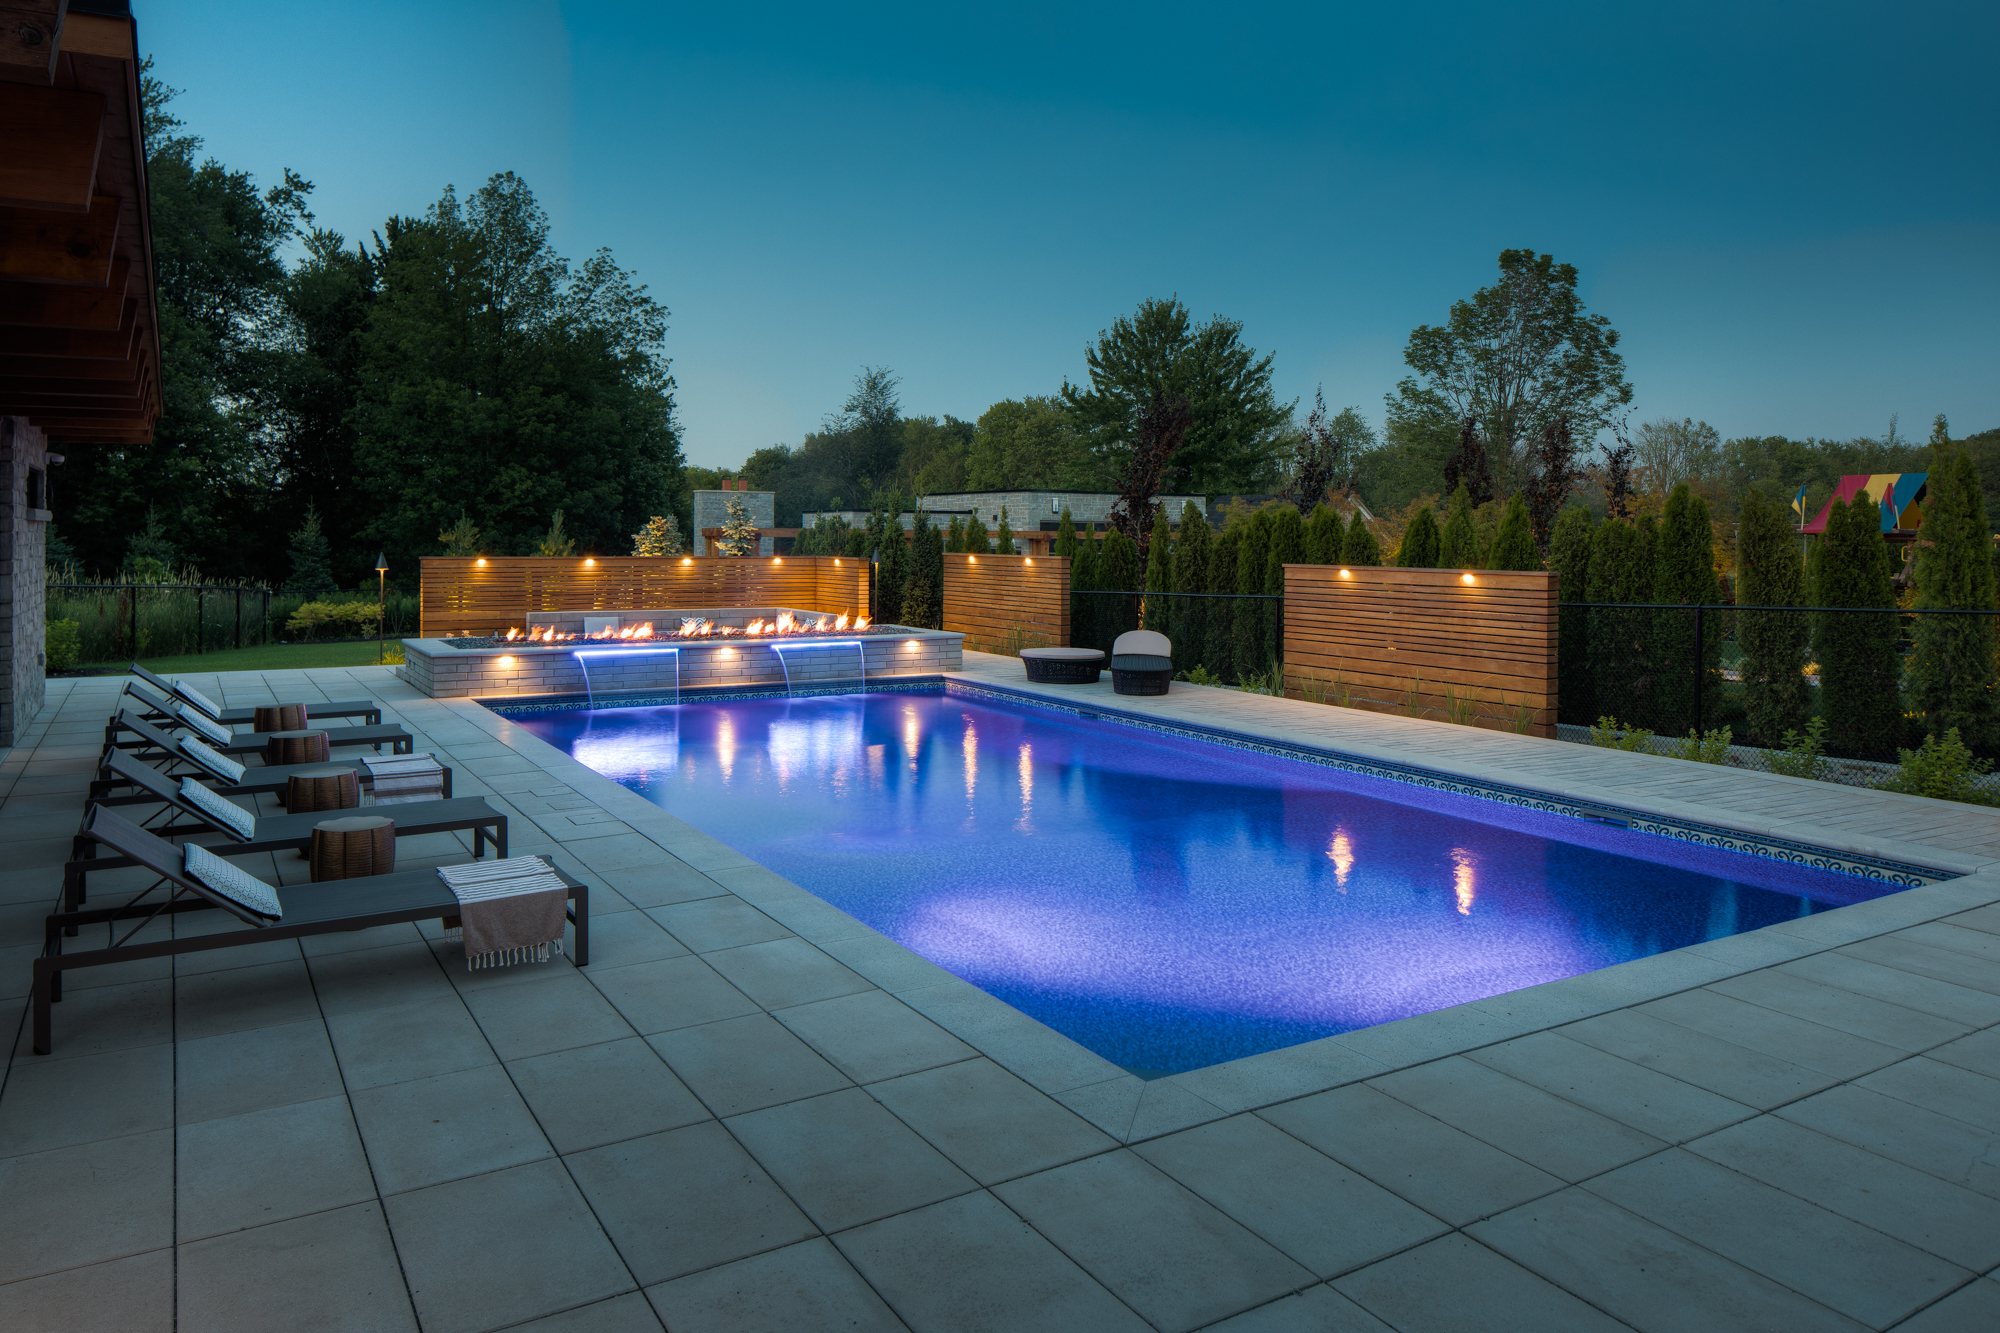 A backyard swimming pool designed and installed by Pool Craft